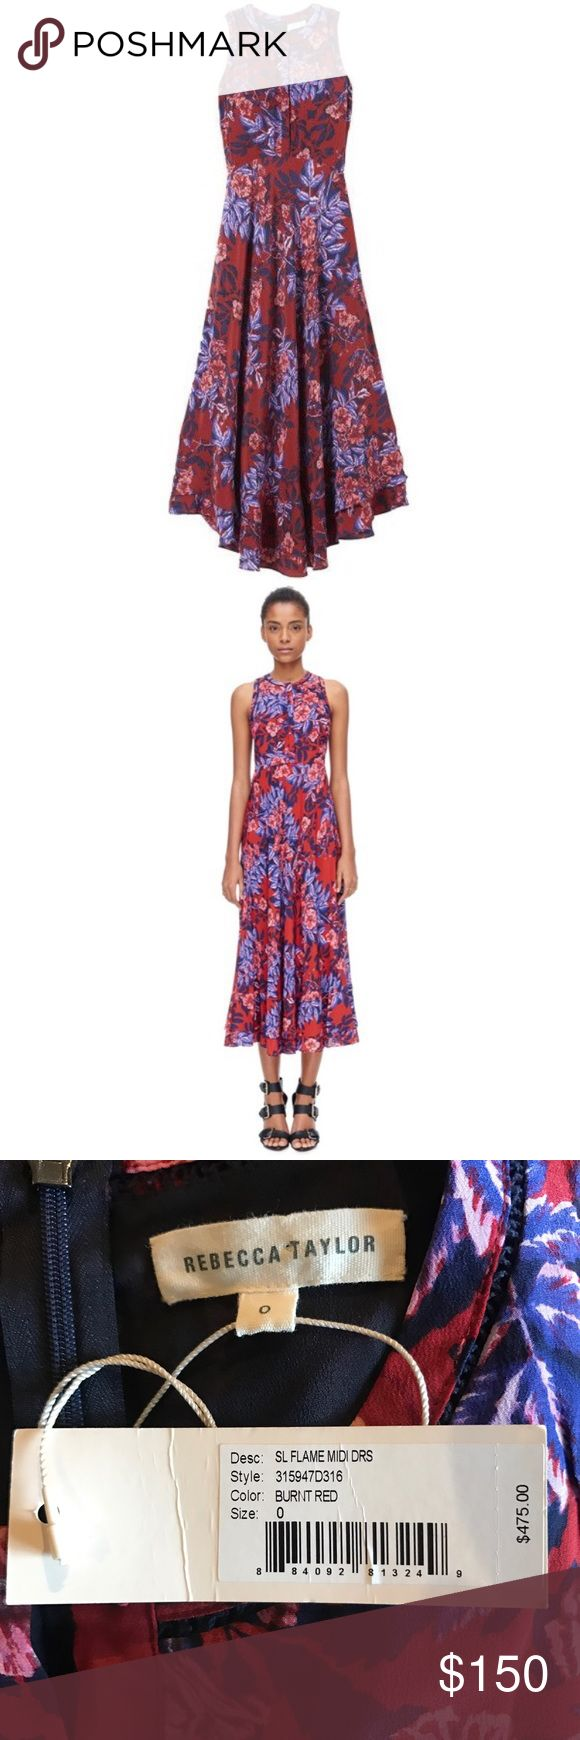 Rebecca Taylor flame of the forest midi dress! NWT Rebecca Taylor flame of the forest midi dress! Brand new with tags, retails for 475$ and is sold out! Size 0 Rebecca Taylor Dresses Midi